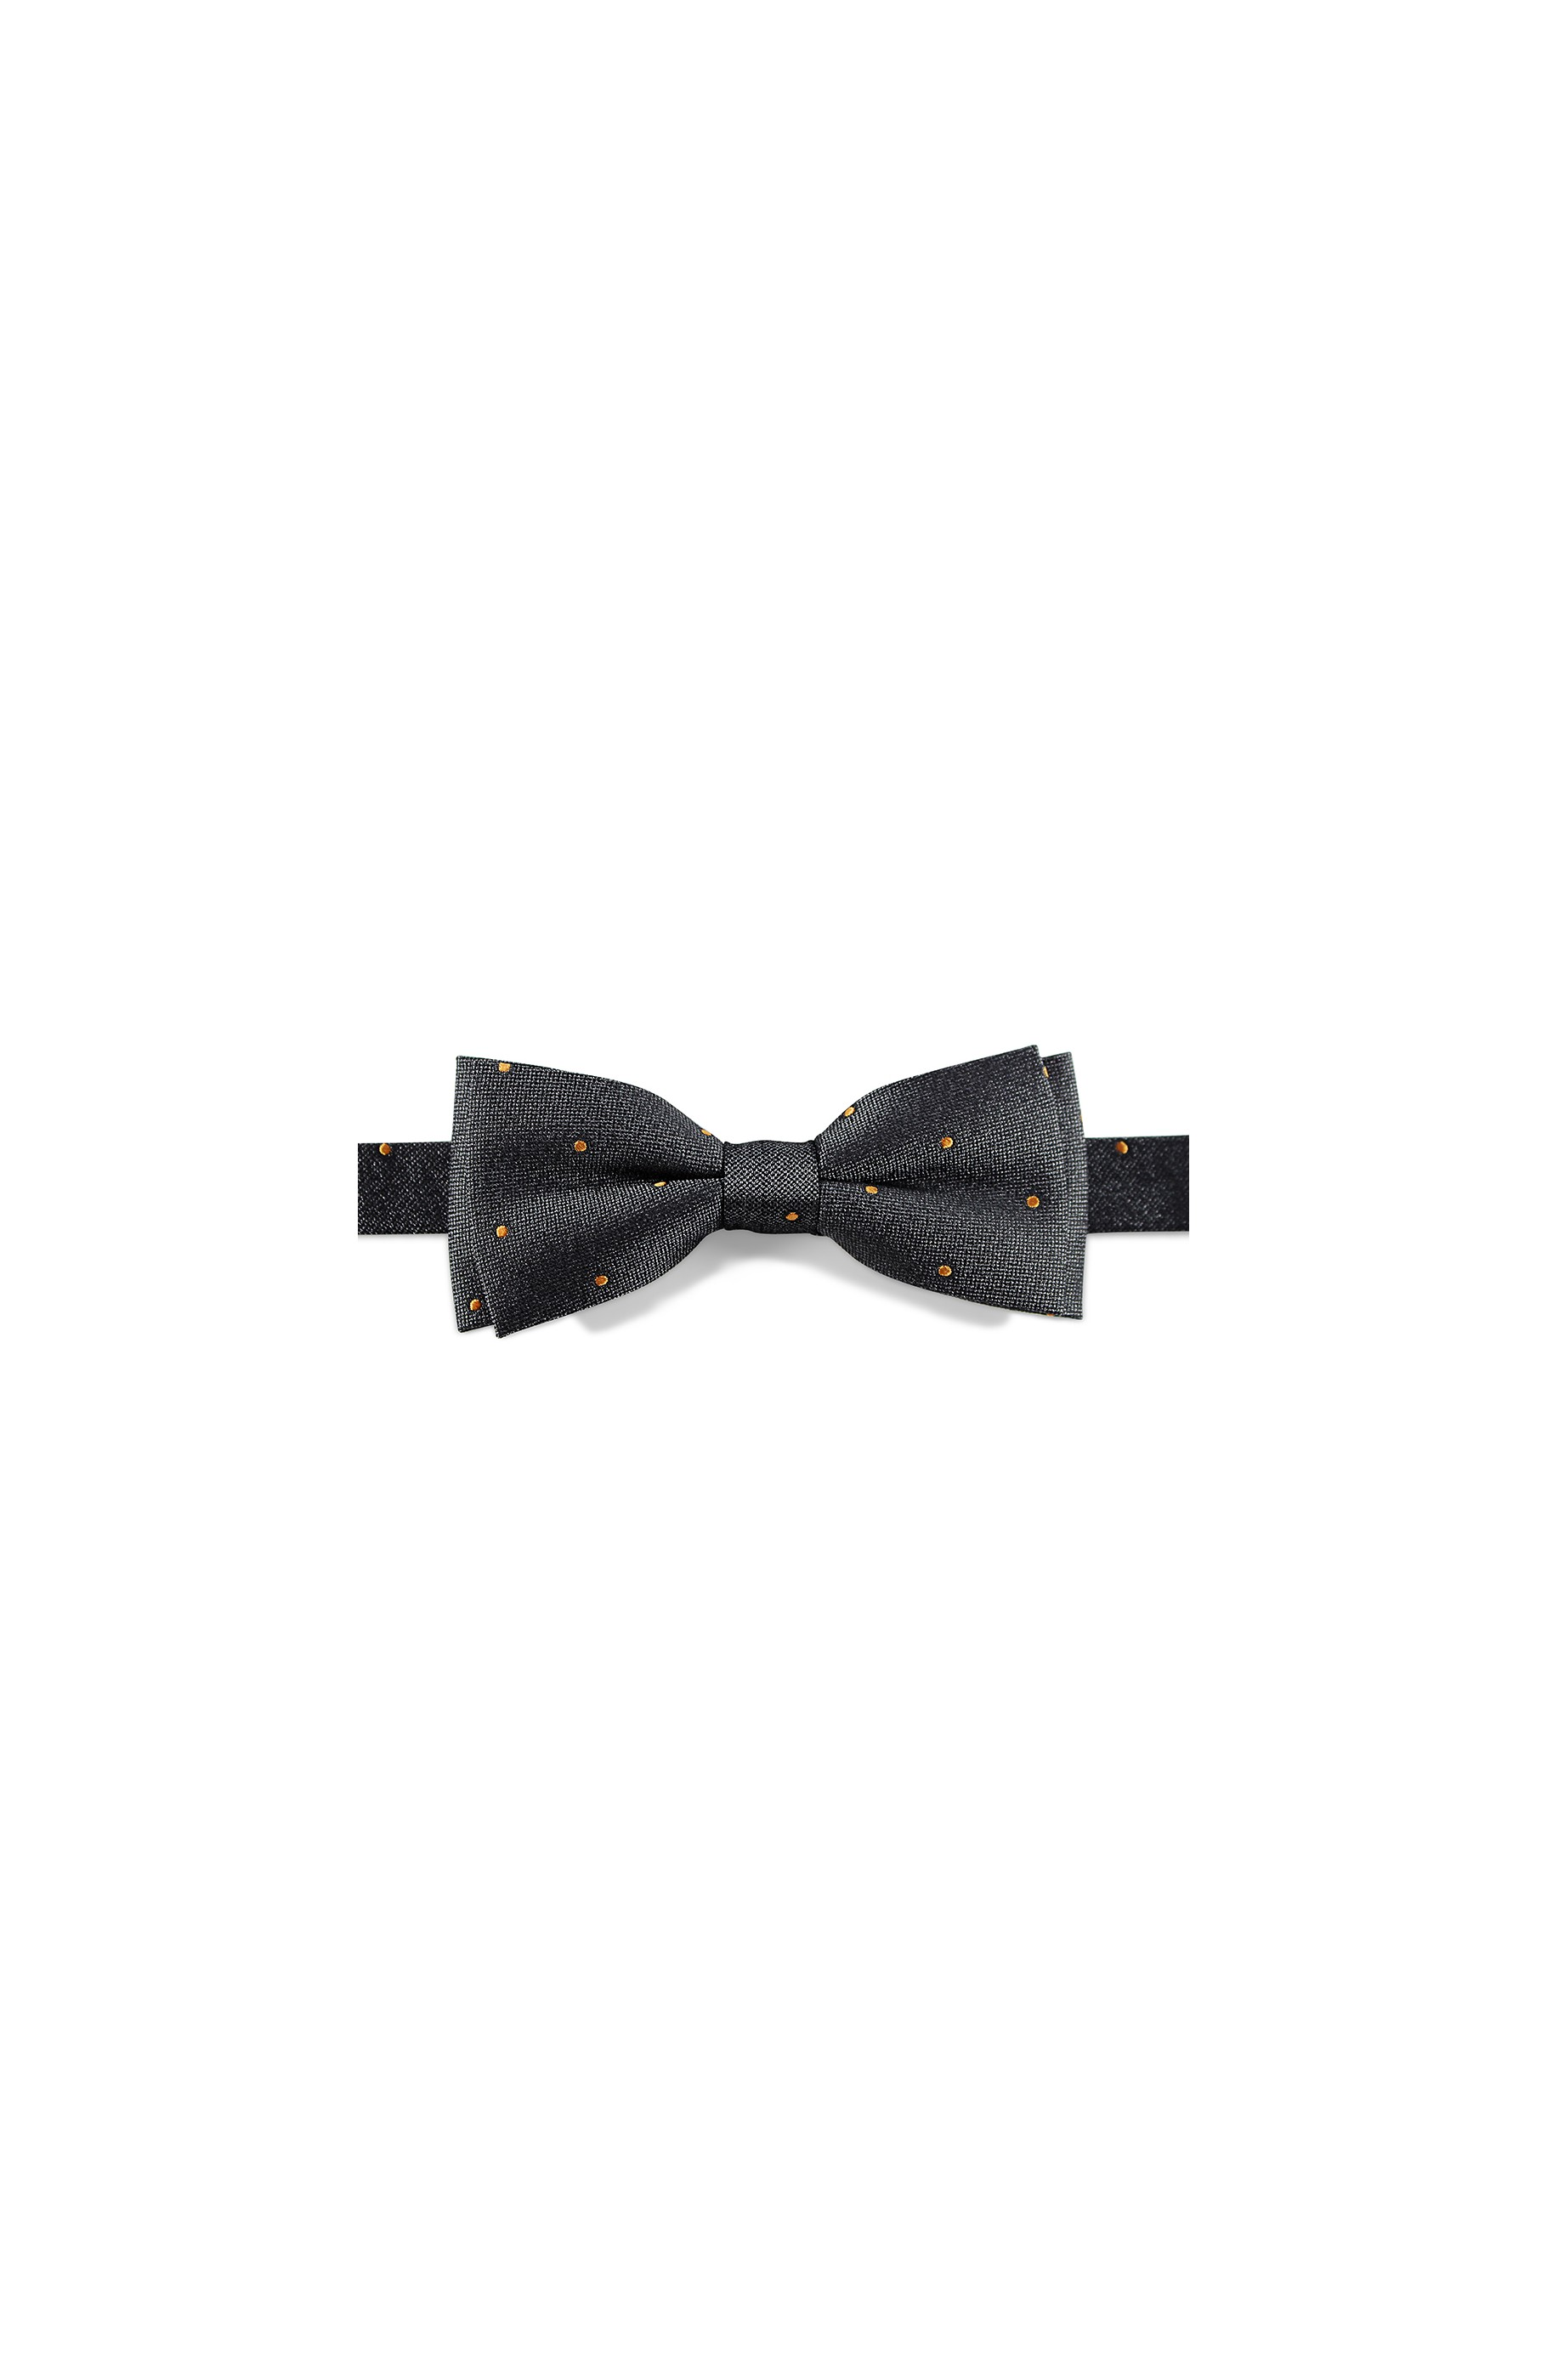 Majesté Couture Paris: Grey silk bow tie with gold dots | Accessories,Accessories > Bow ties -  Hiphunters Shop